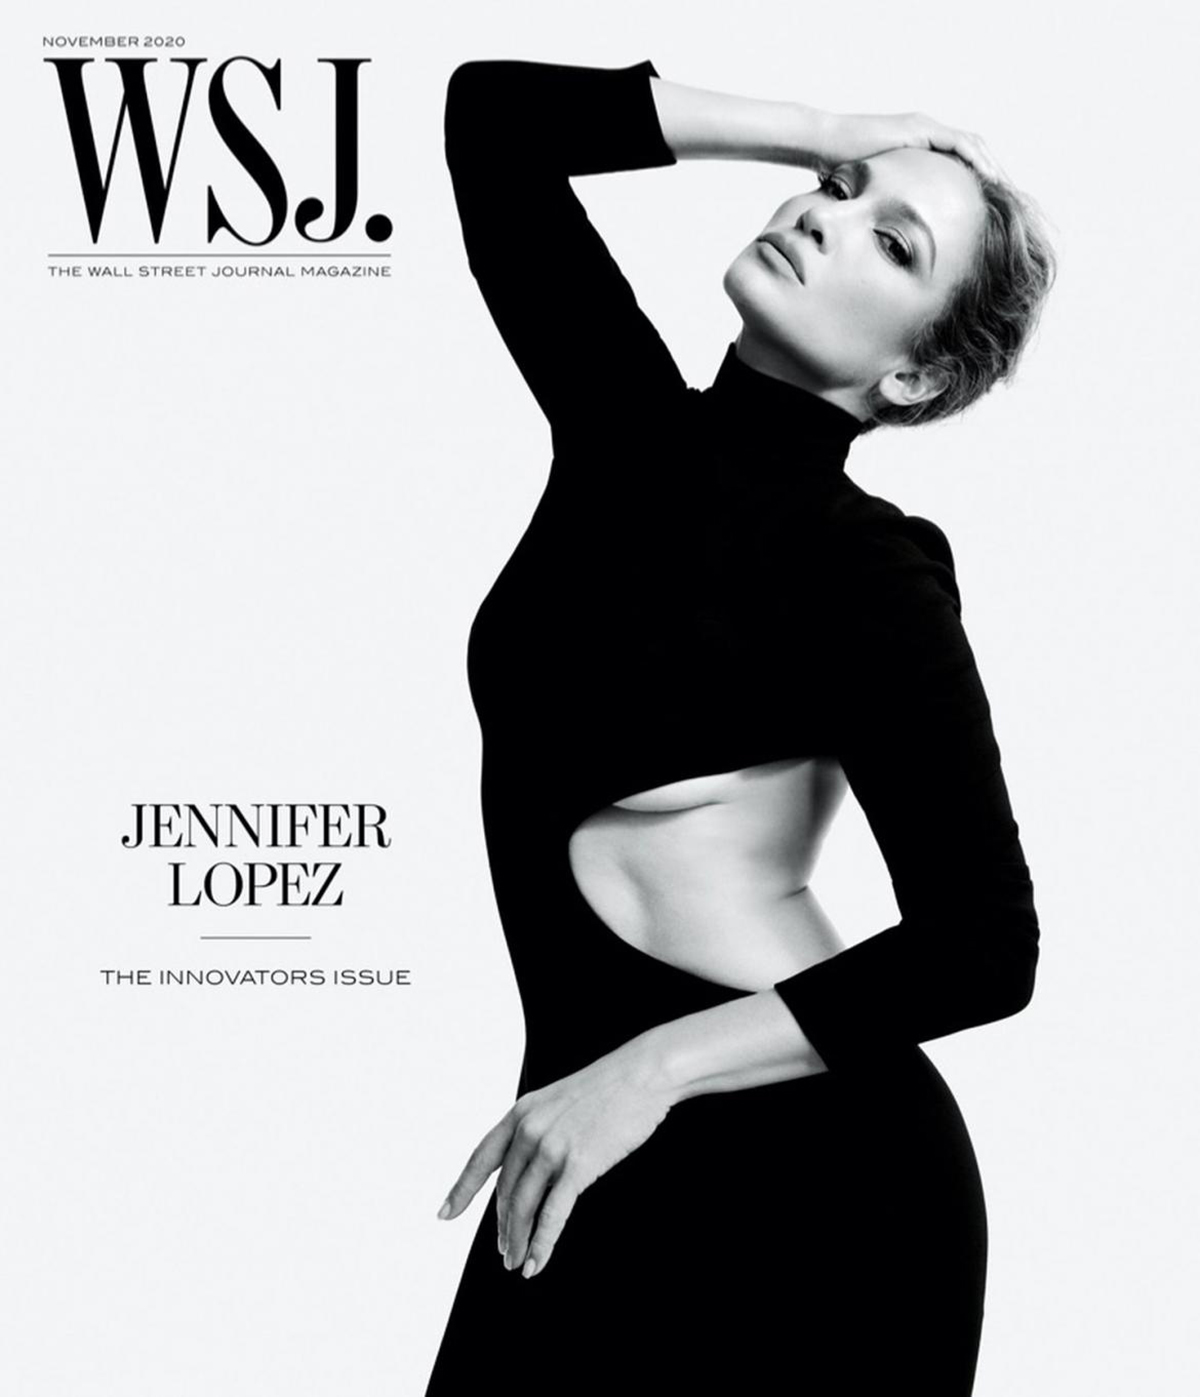 Jennifer Lopez covers WSJ. Magazine November 2020 by Gray Sorrenti